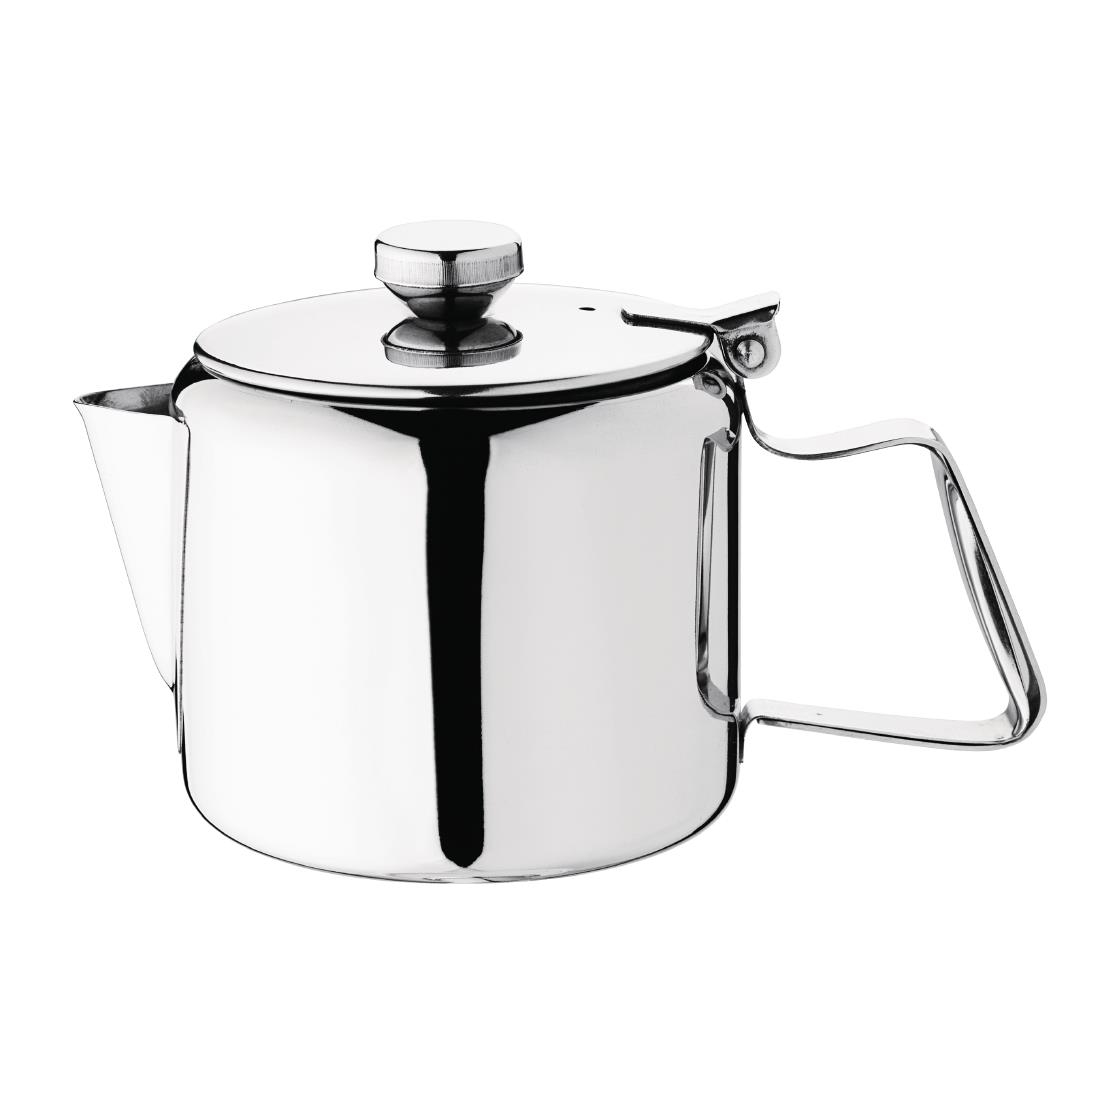 Olympia-Concorde-Tea-Pot-Stainless-Steel-Coffee-Infuser-Kitchen